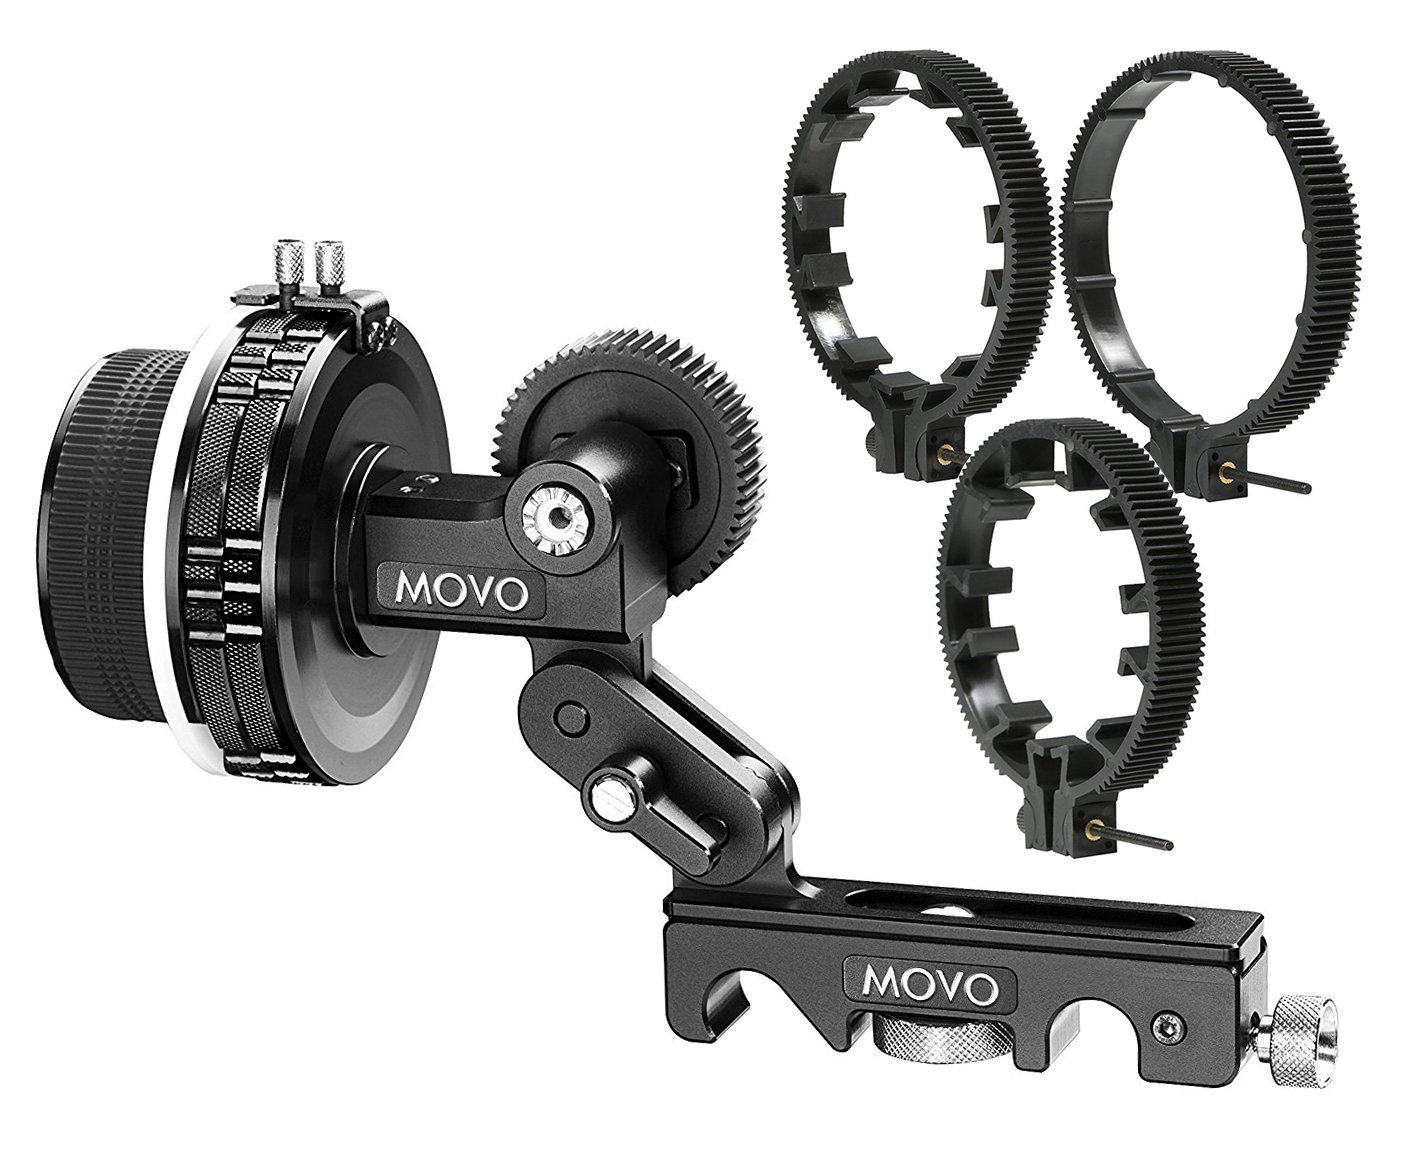 Movo F2X Precision Follow Focus System with Hard Stops and 65mm, 75mm, 85mm Adjustable Gear Rings by Movo